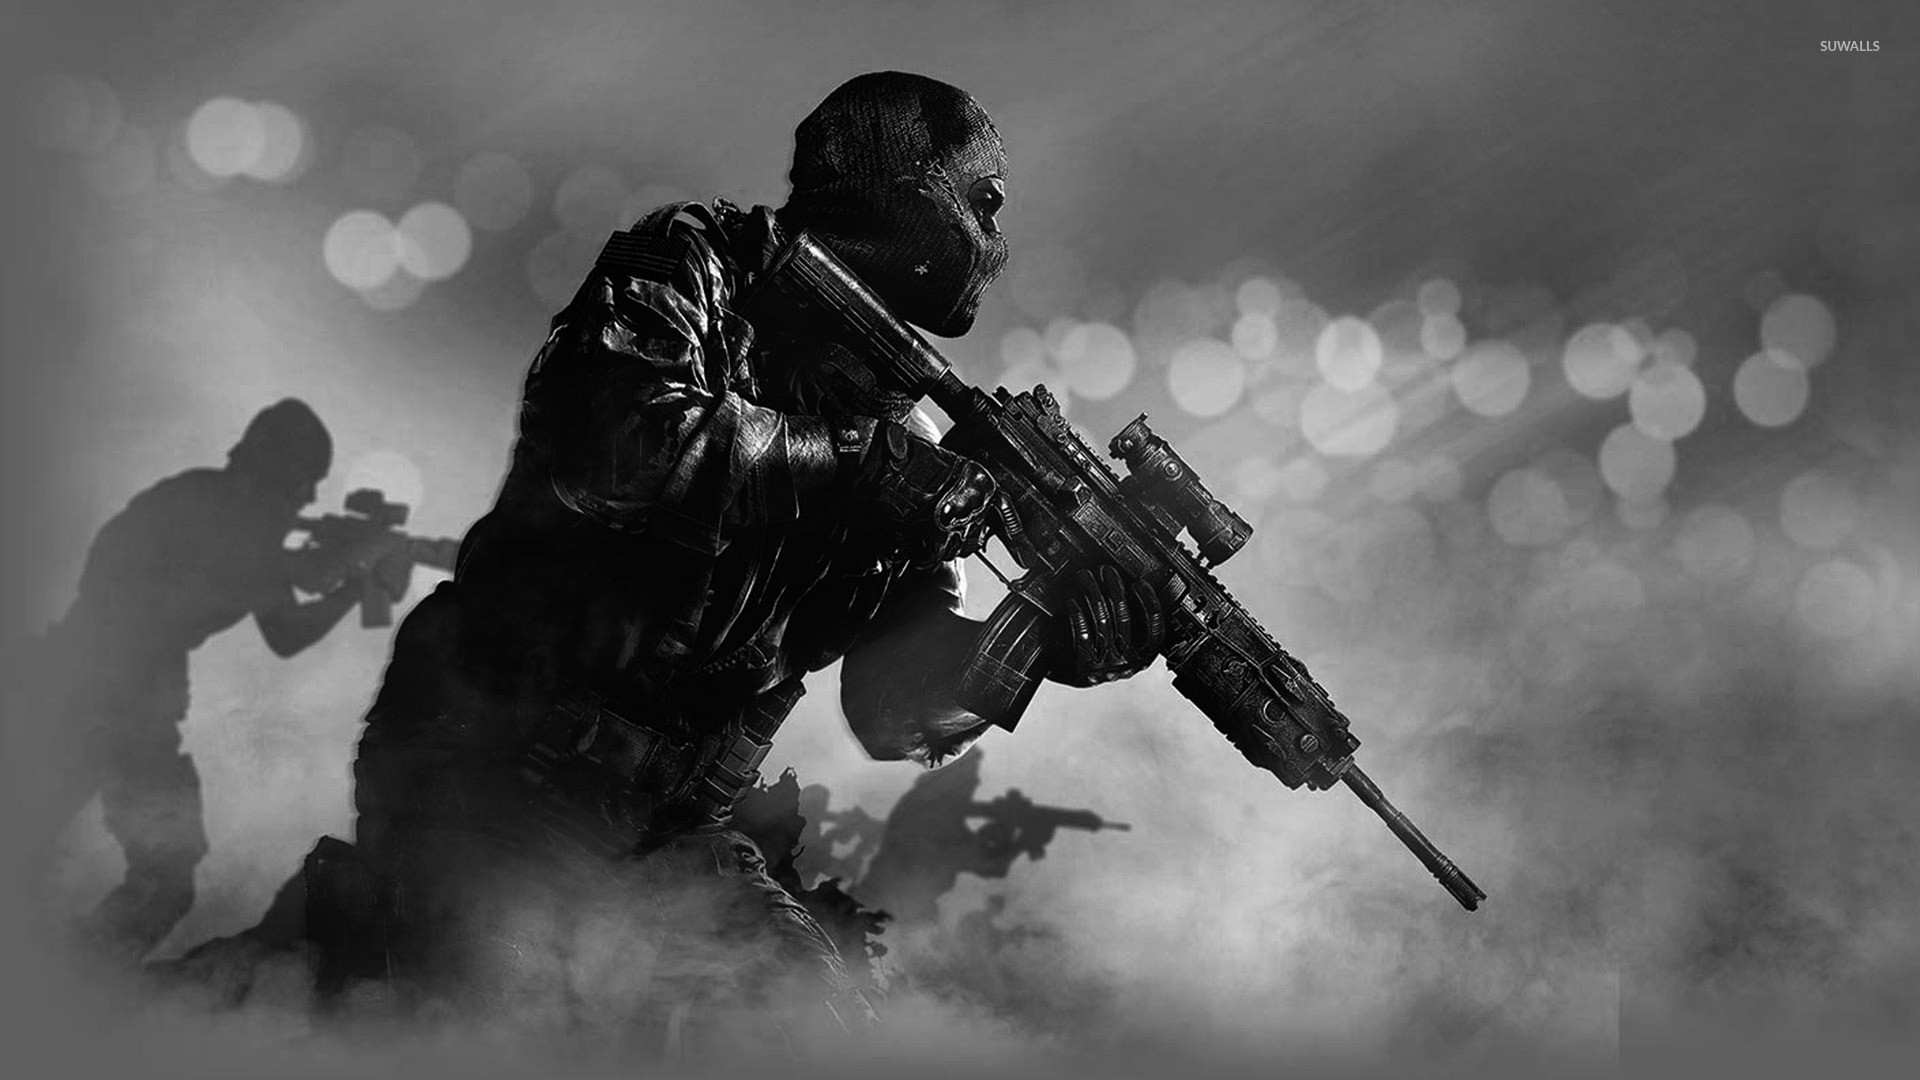 Call of Duty Ghost Wallpaper (81+ images)